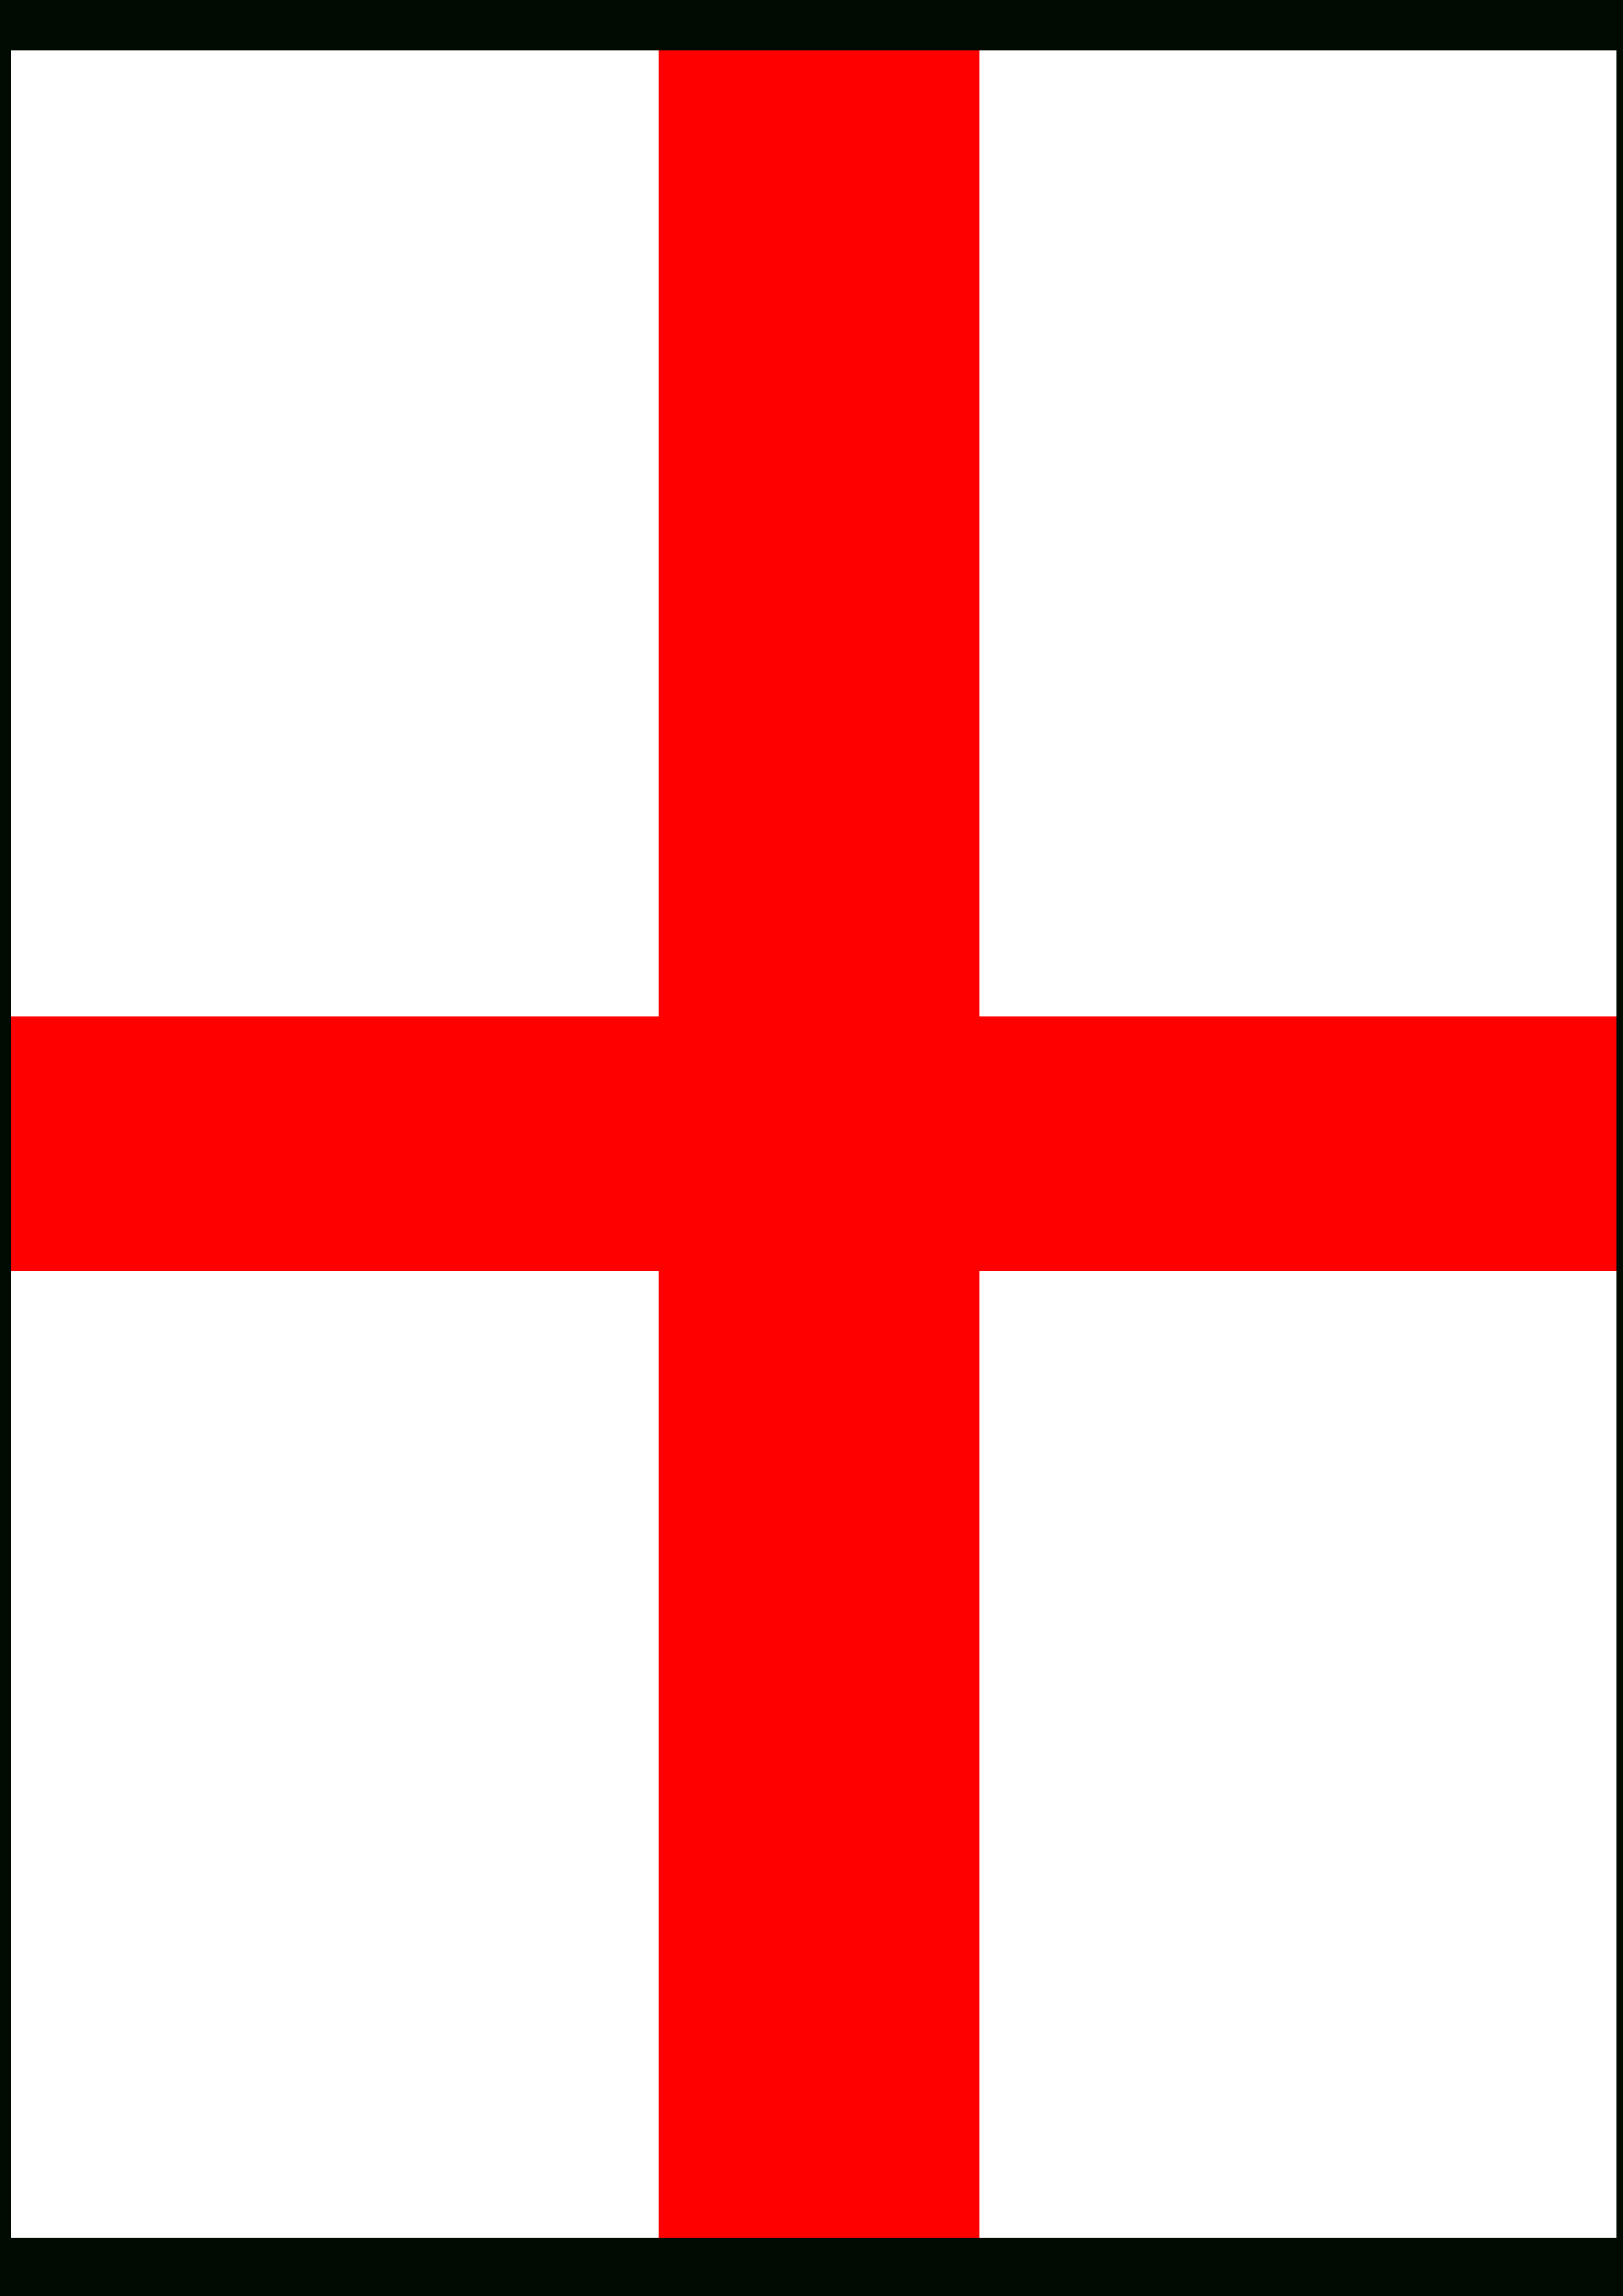 Free Flag Of England Template | Templates At Allbusinesstemplates - Free Printable Flags From Around The World